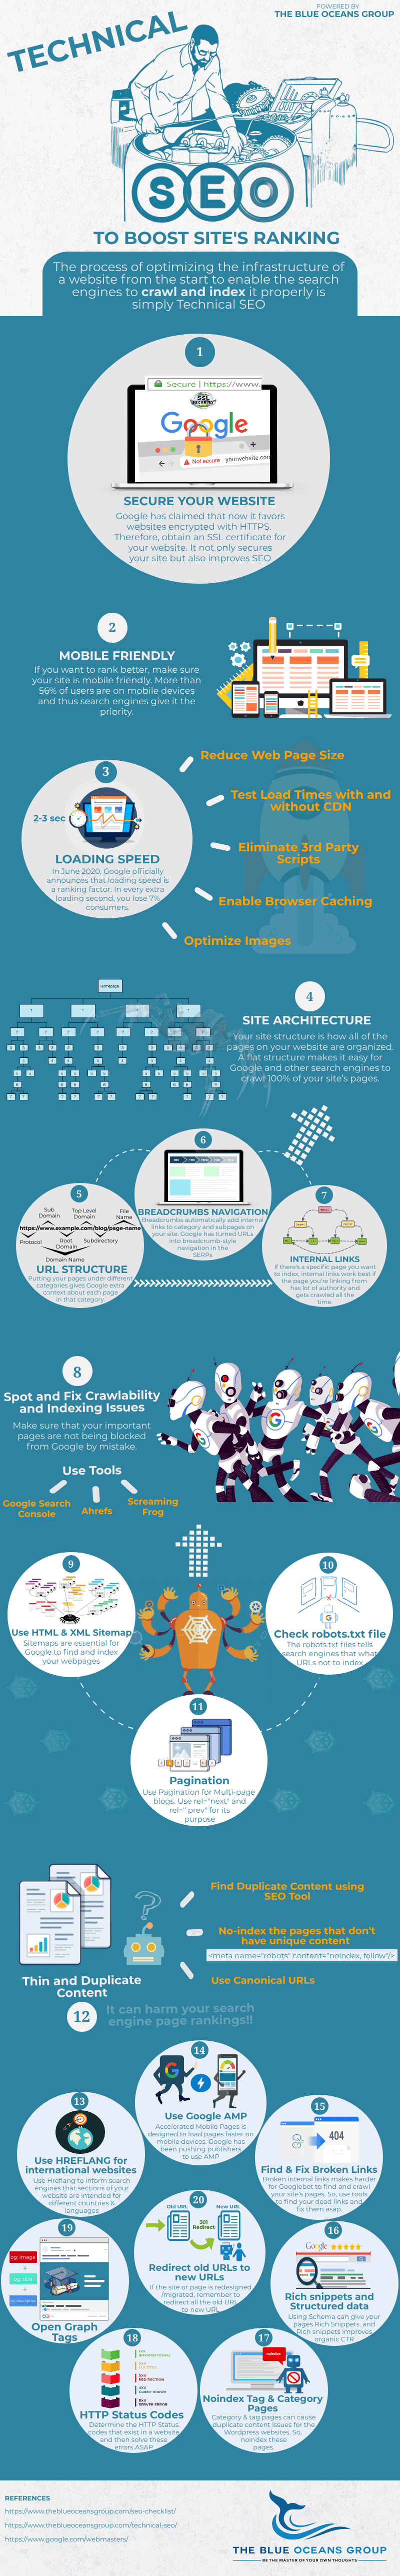 Technical SEO infographic